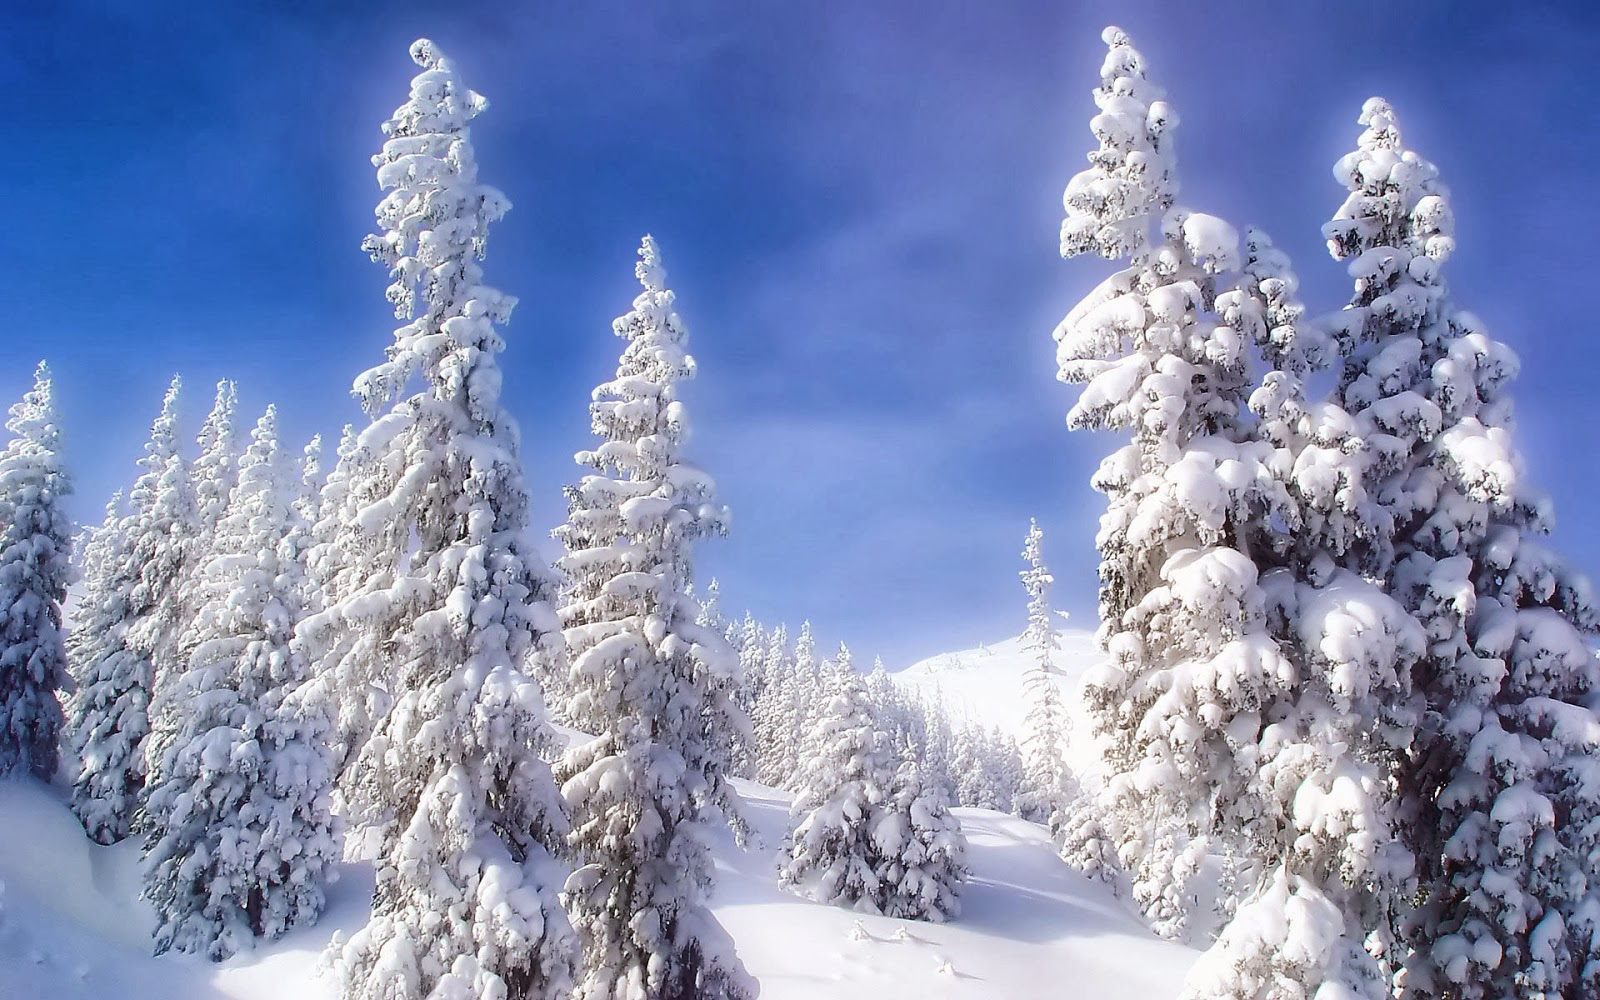 Snow Fall Winter HD Wallpapers - HD Wallpapers Blog